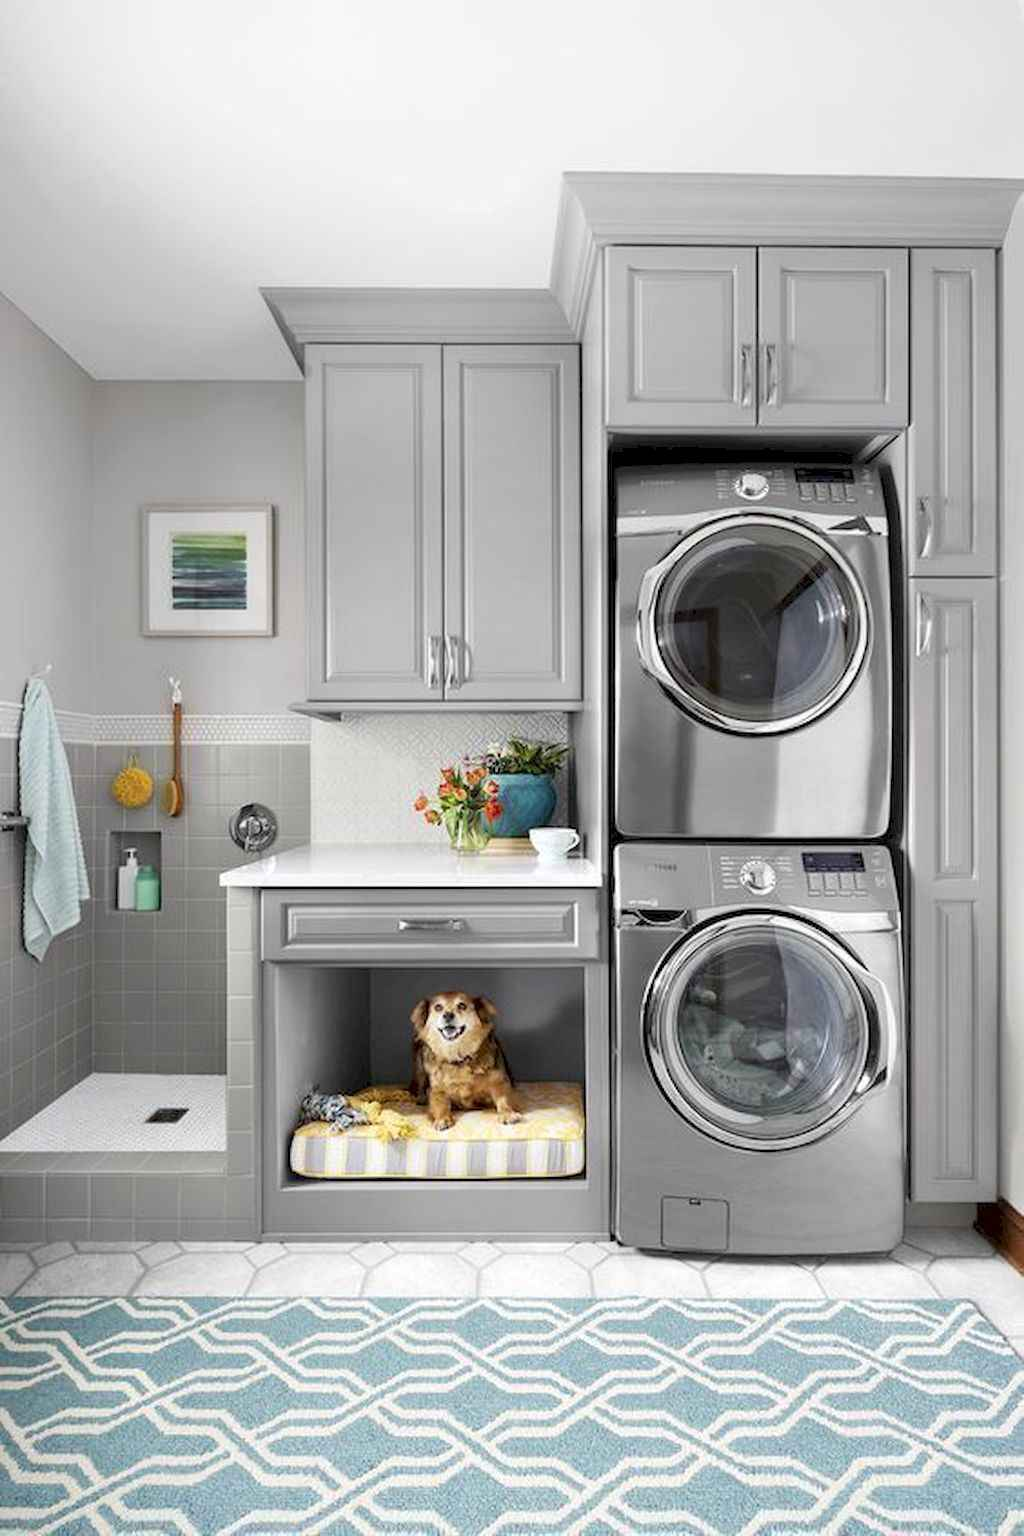 45 Rustic Farmhouse Laundry Room Design Ideas and Makeover (15)